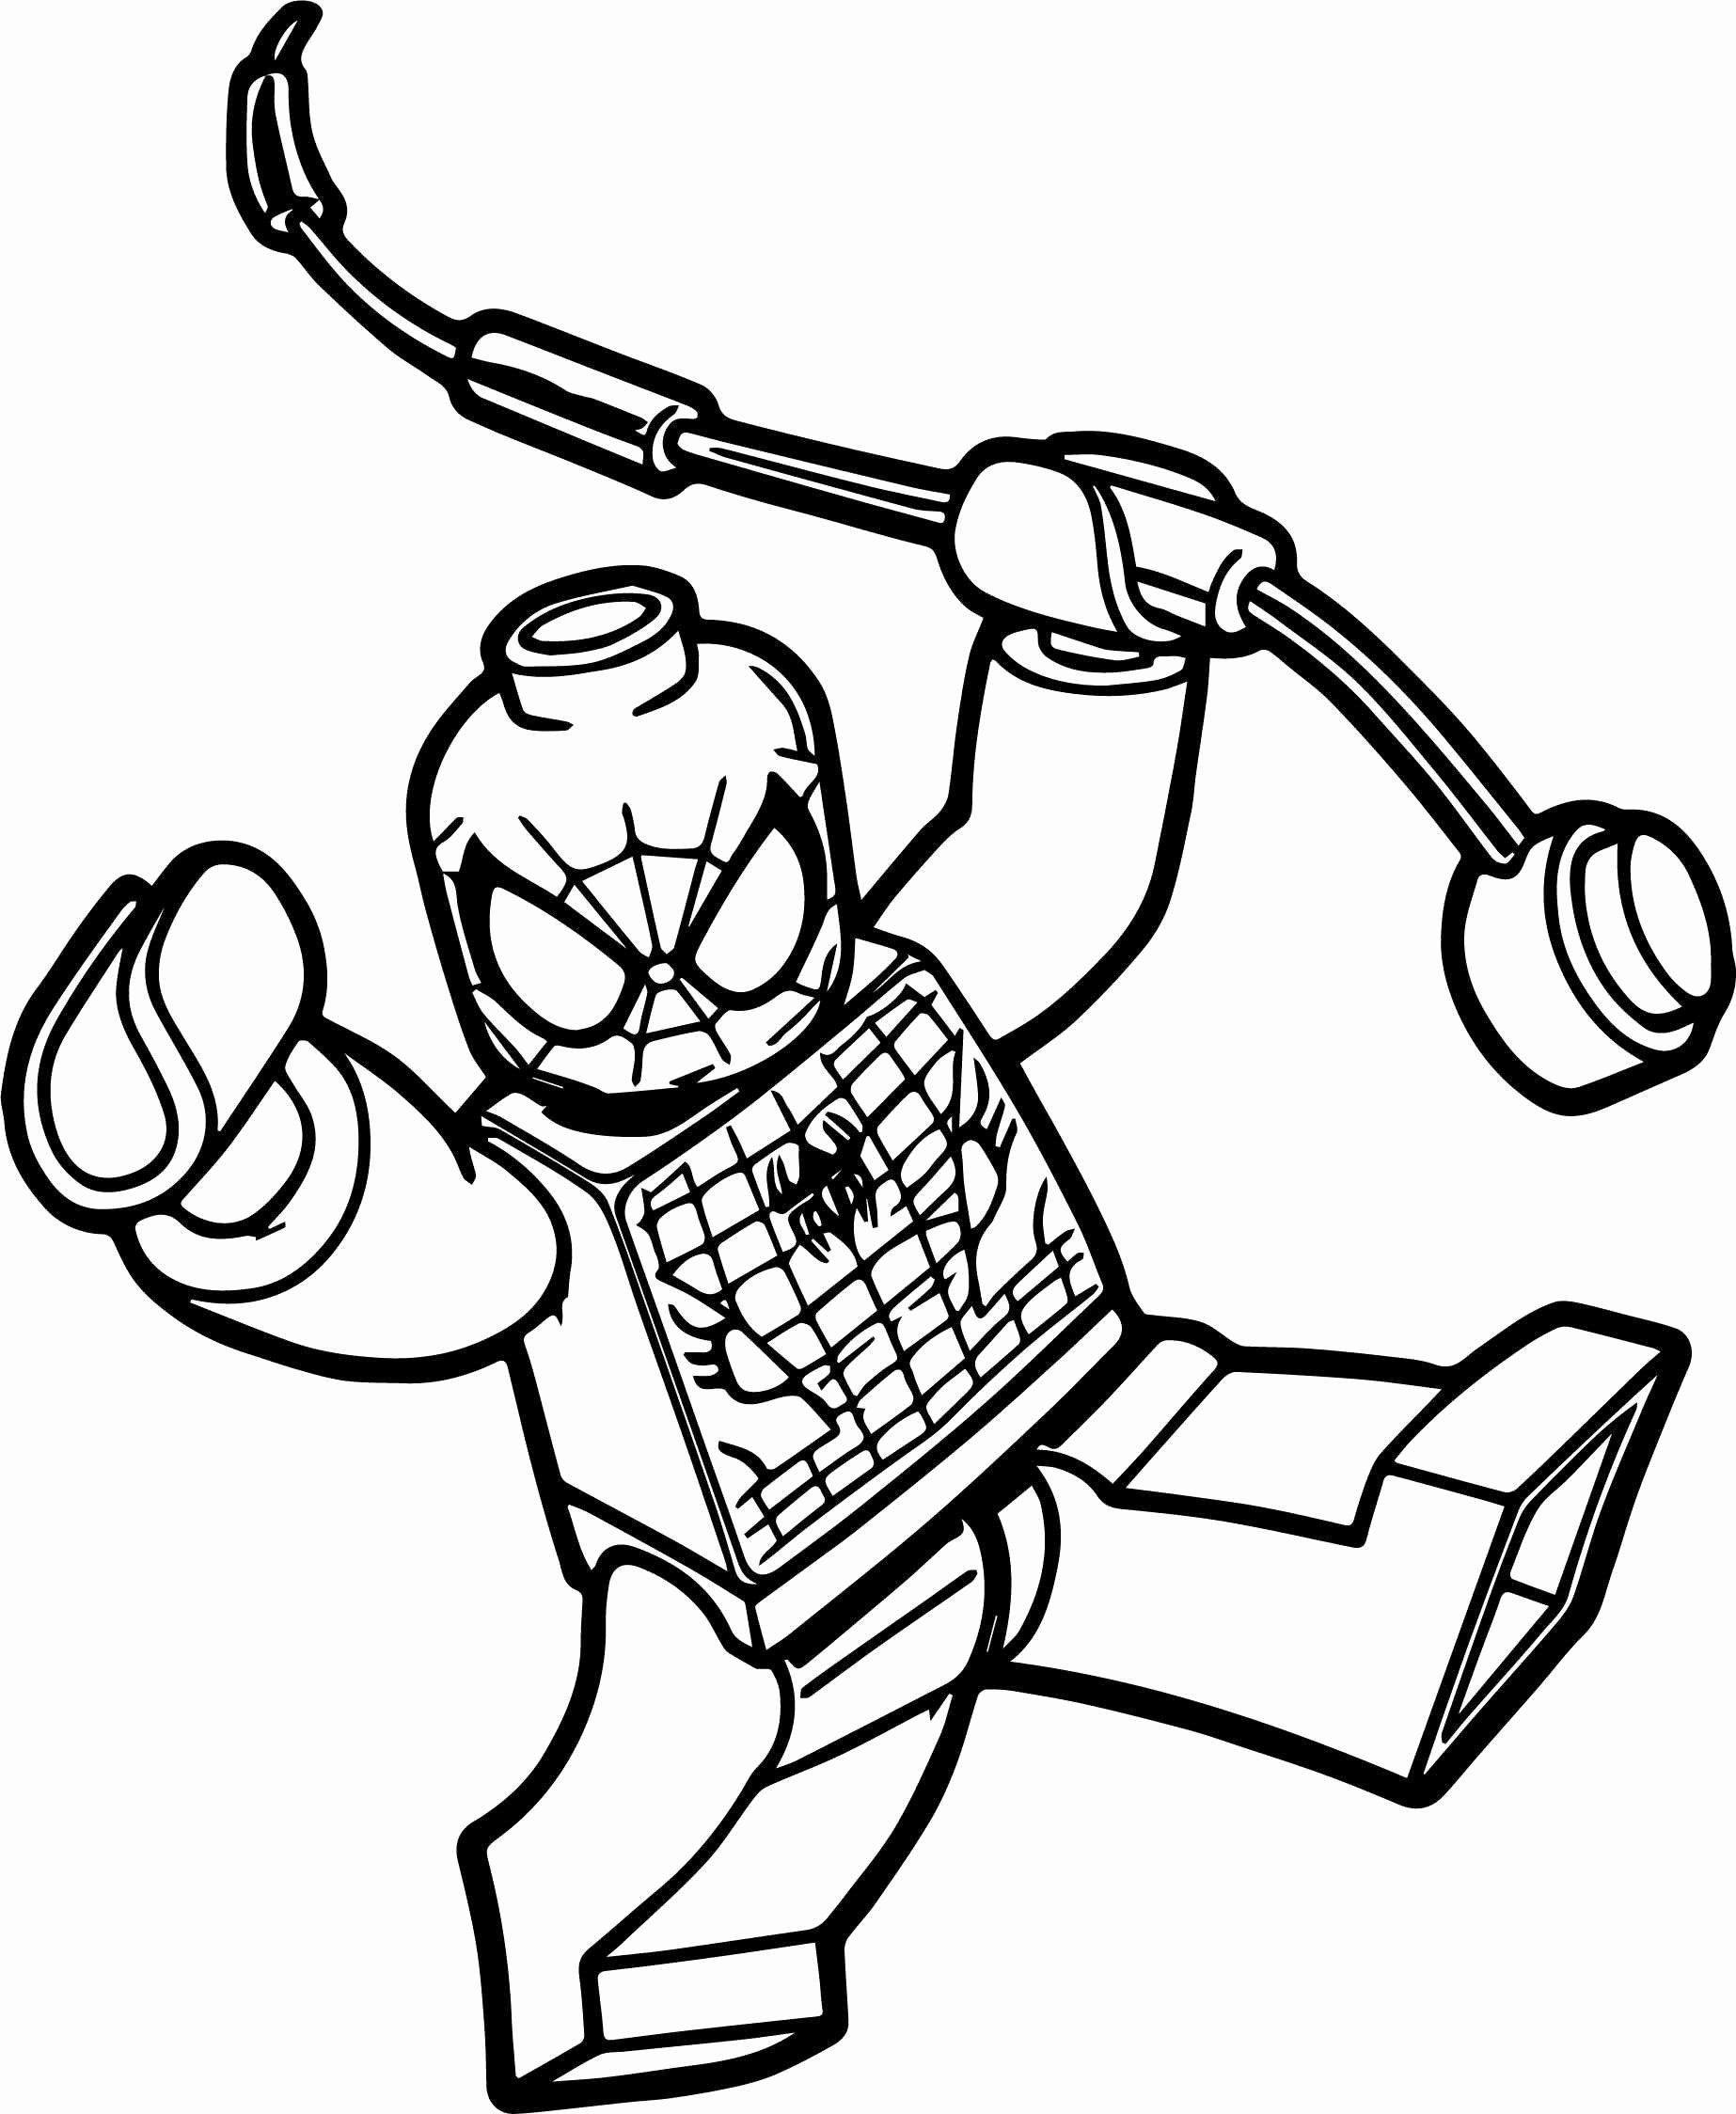 Sports Coloring Book Pdf Best Of Spiderman Coloring Pages In 2020 Spiderman Coloring Lego Coloring Pages Cartoon Coloring Pages